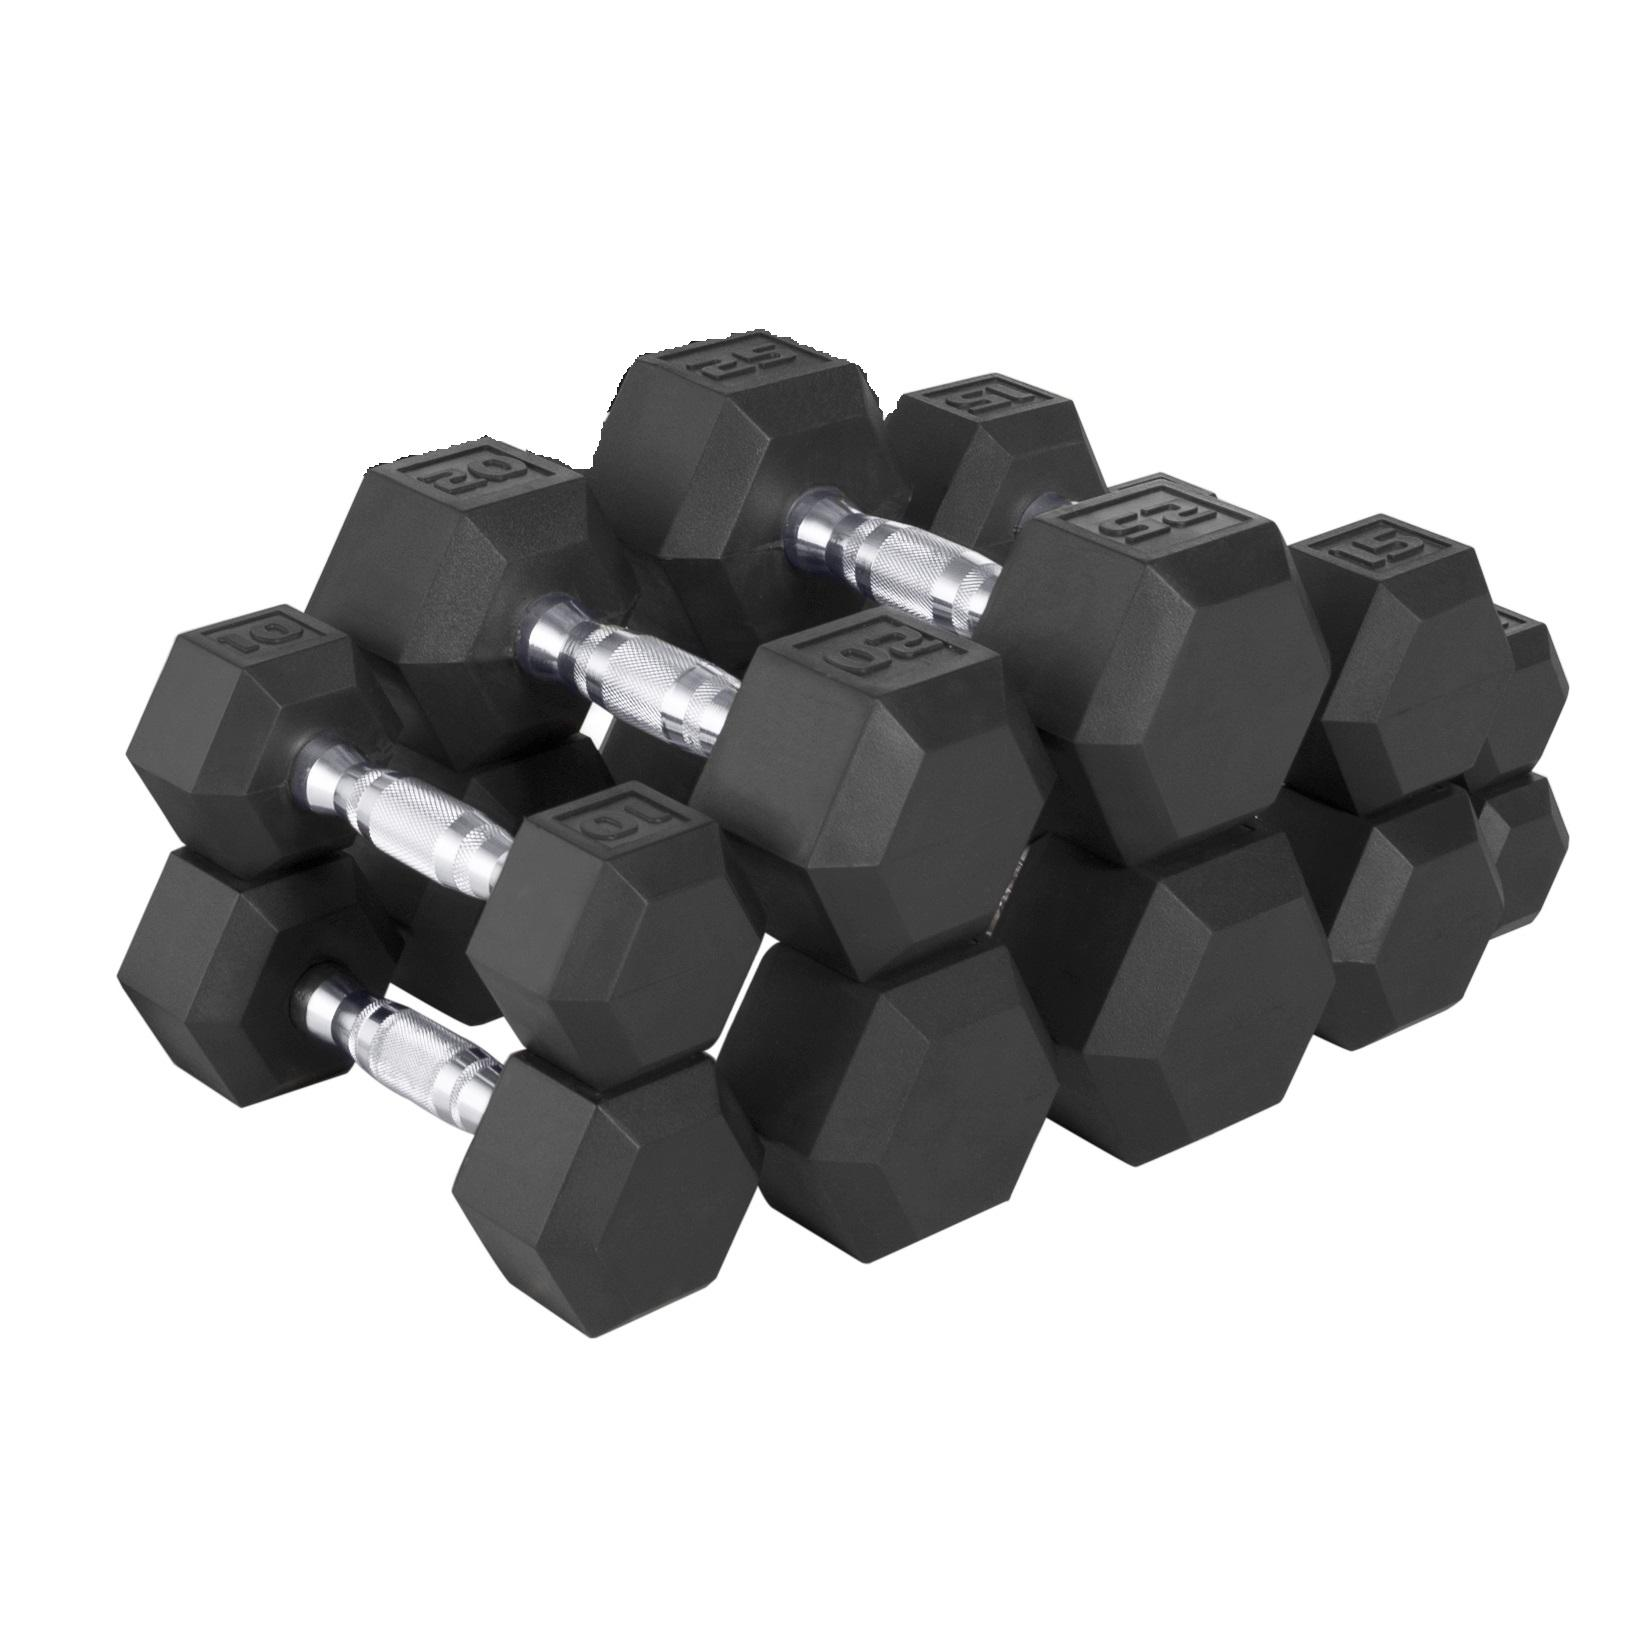 25 Lbs Dumbbell Set: Amazon.com : CAP Barbell 150-lb Rubber Hex Dumbbell Weight